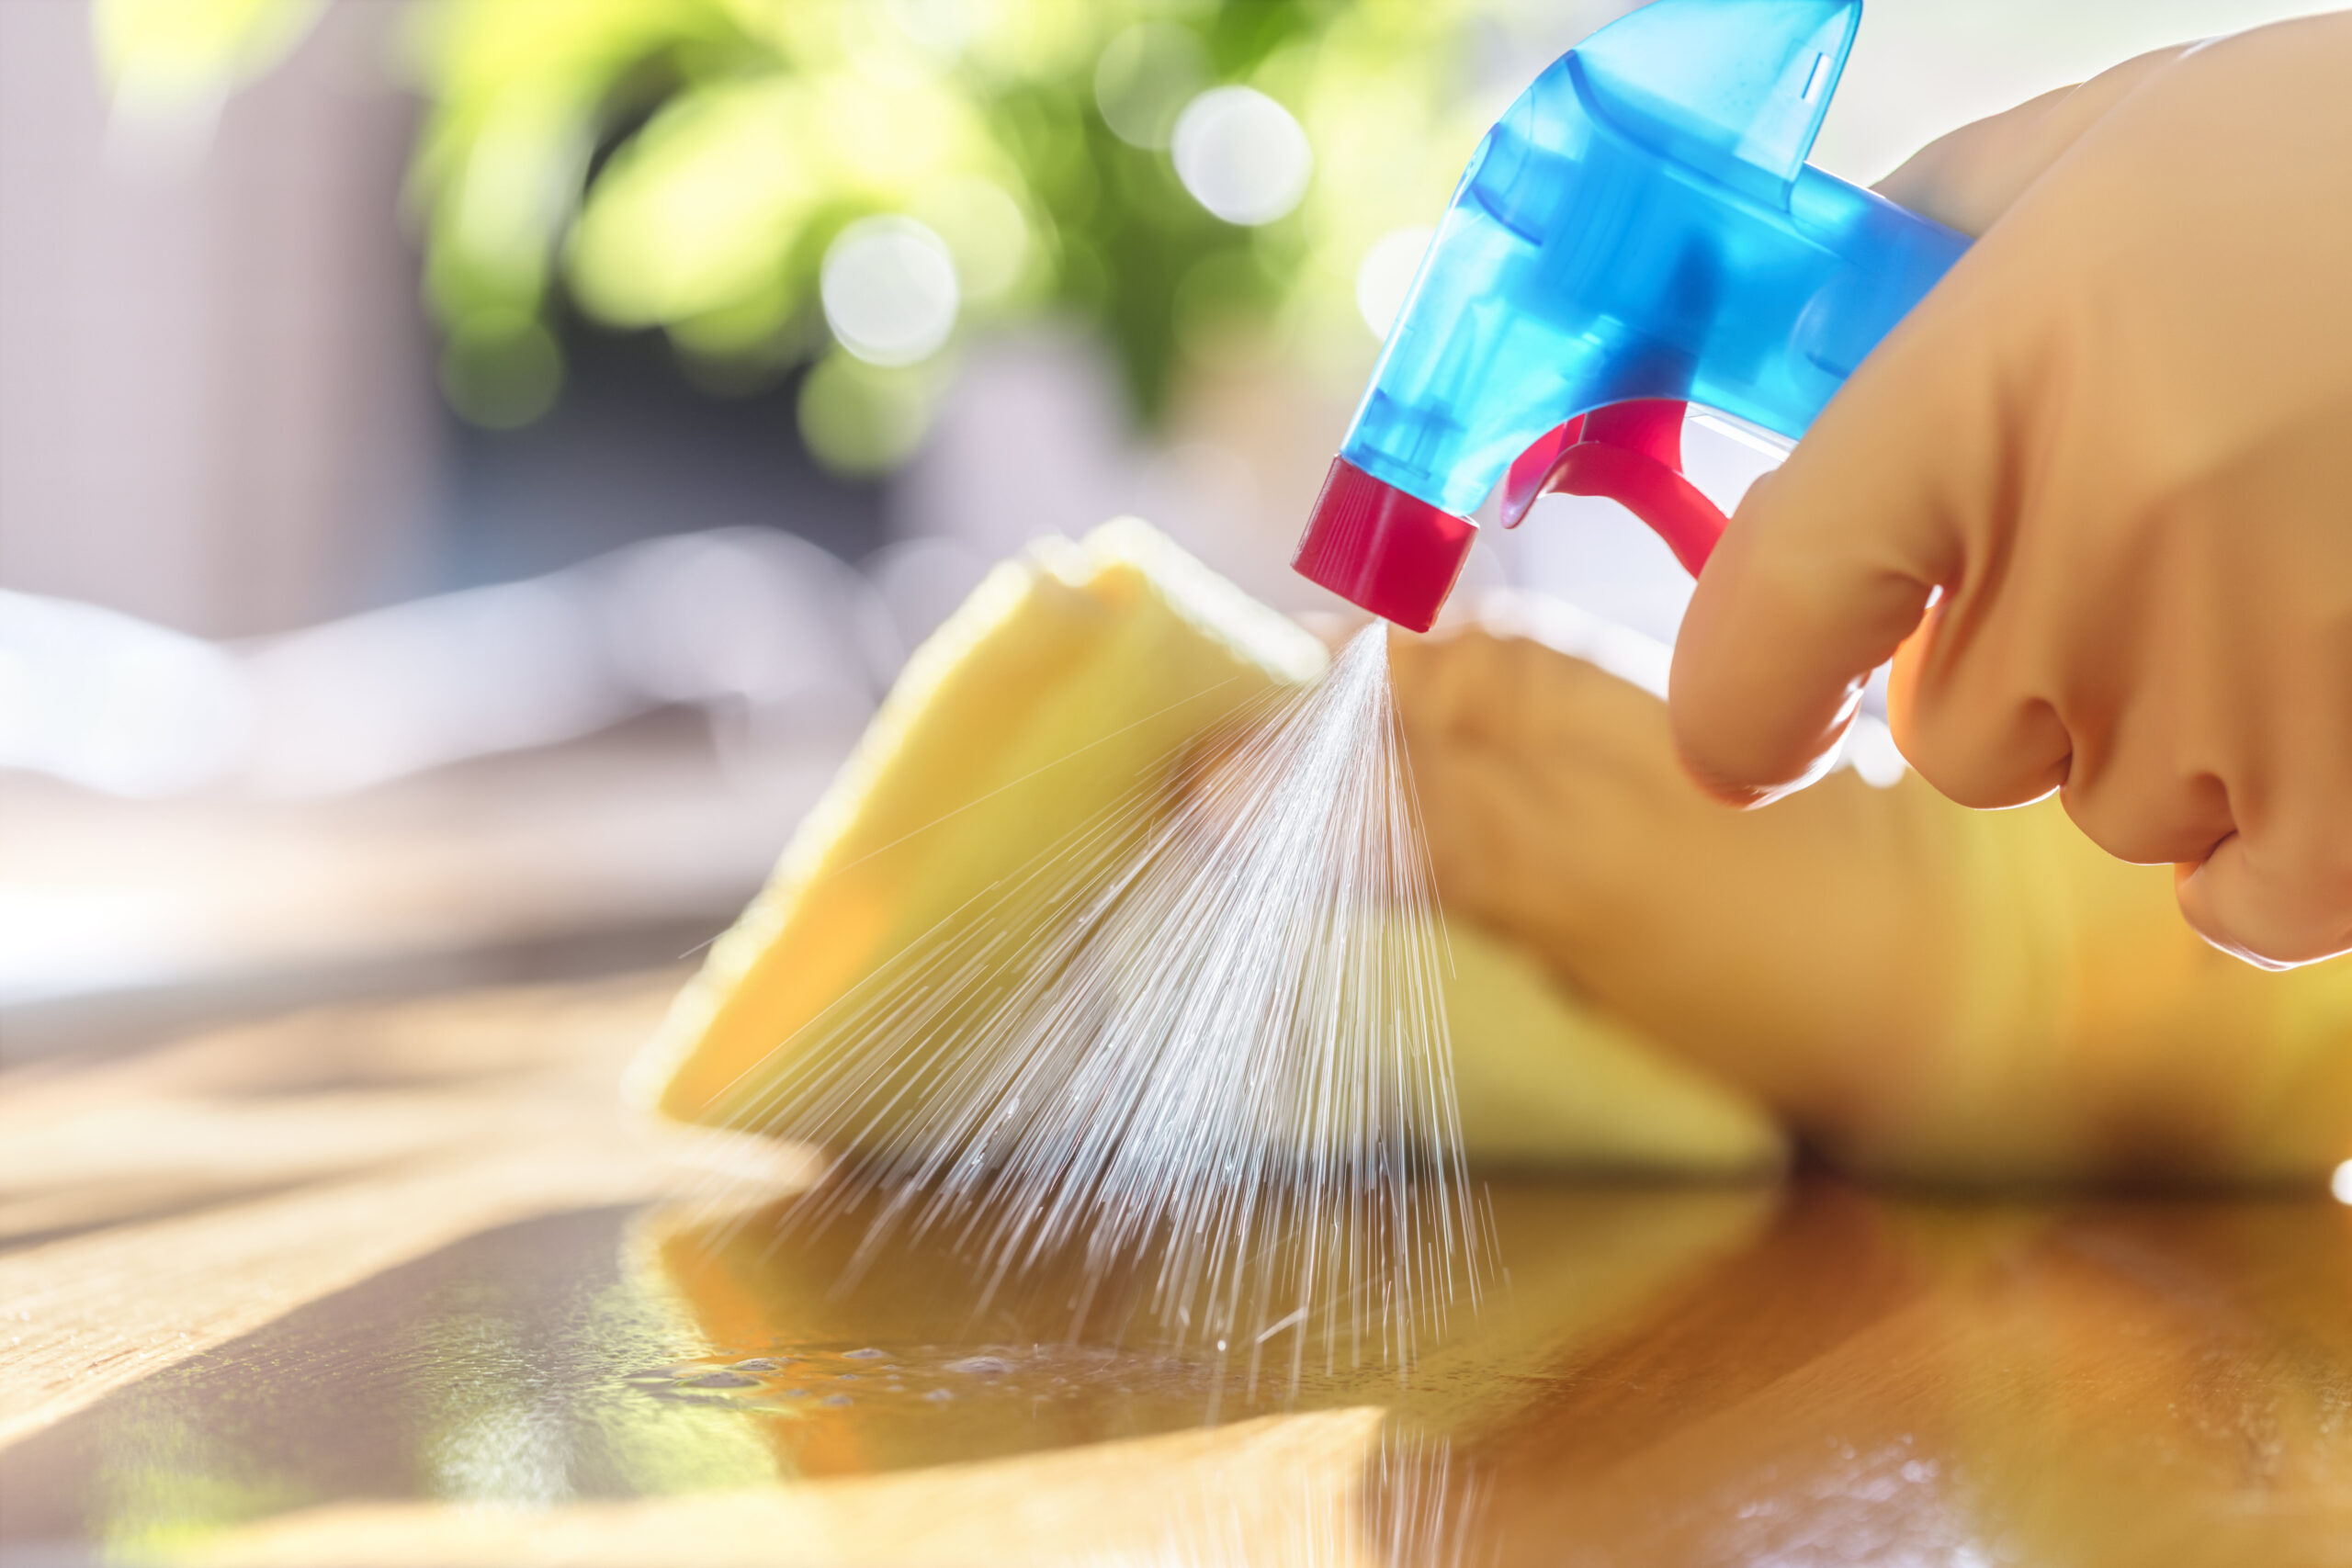 Photo of cleaning surface with hands in yellow rubber gloves holding spray bottle and sponge